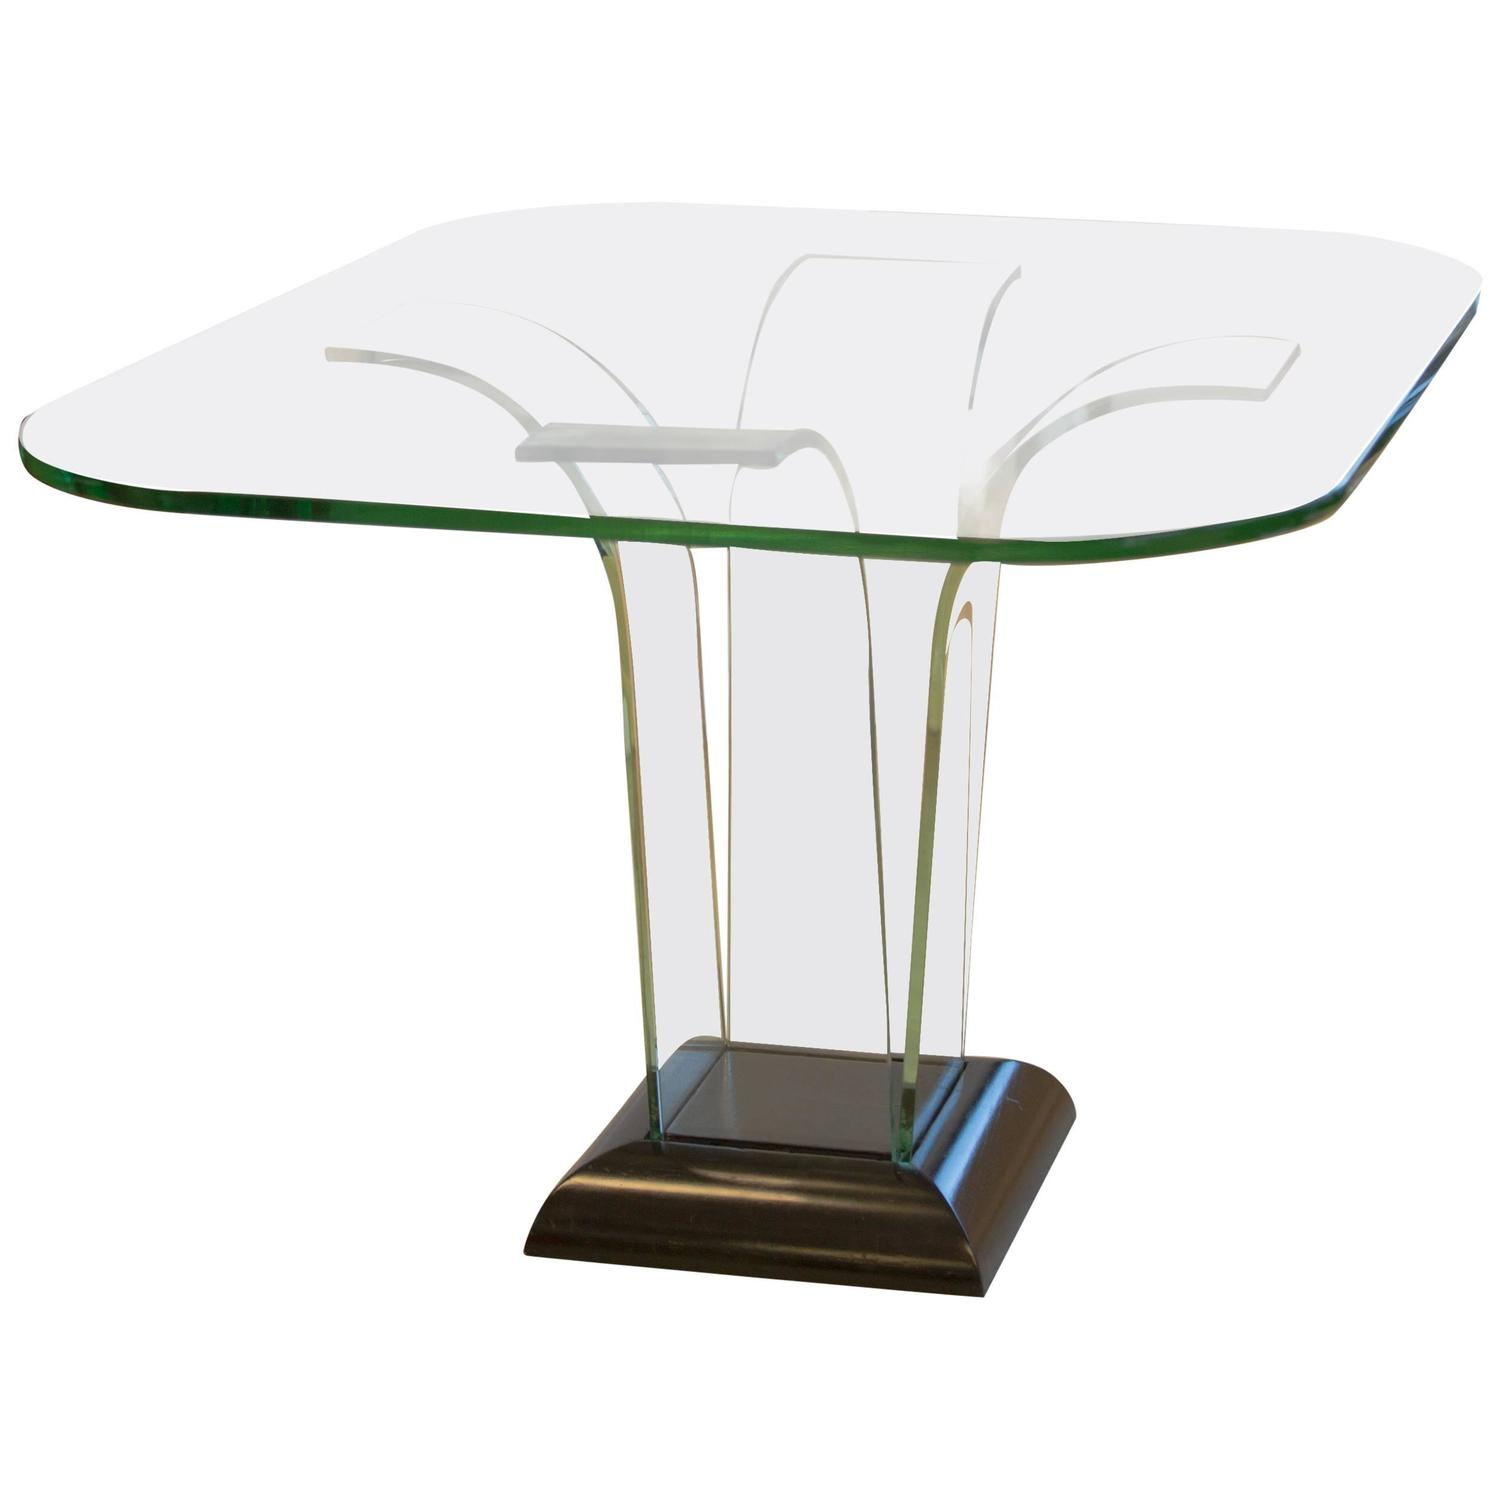 Center Table With Glass : Glass Center Table by Modernage For Sale at 1stdibs